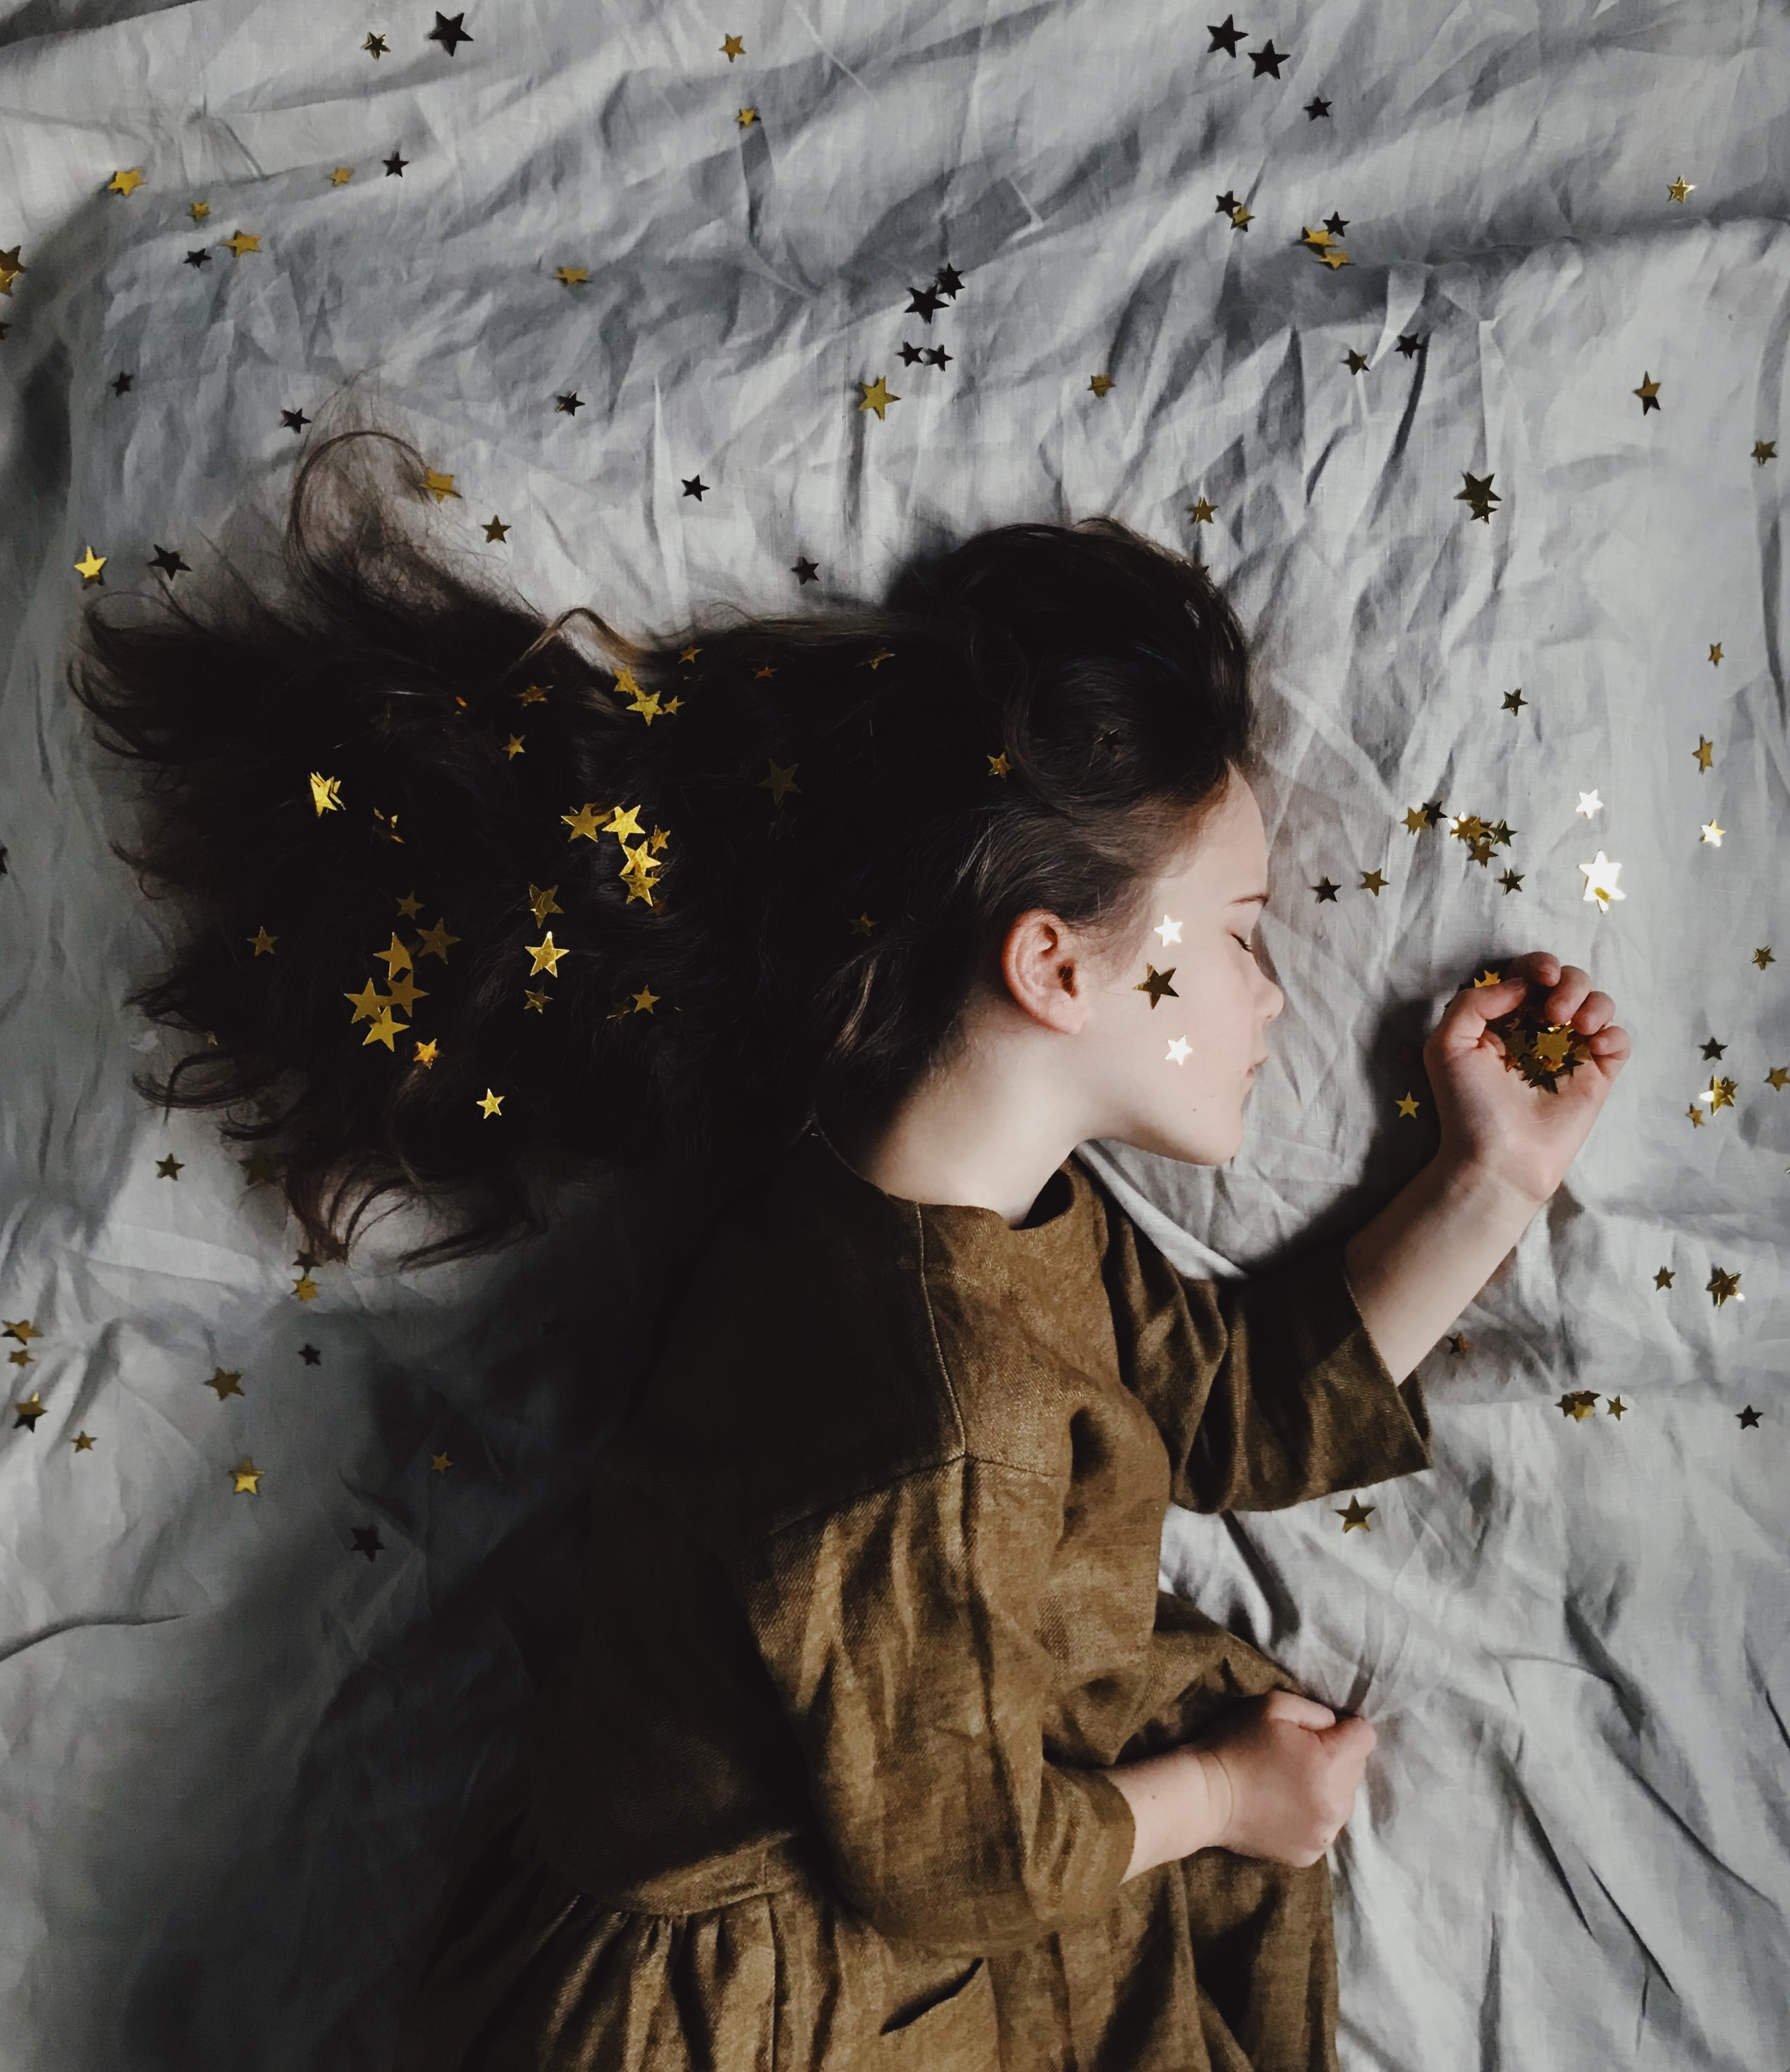 Young girl sleeping on a bed covered in stars